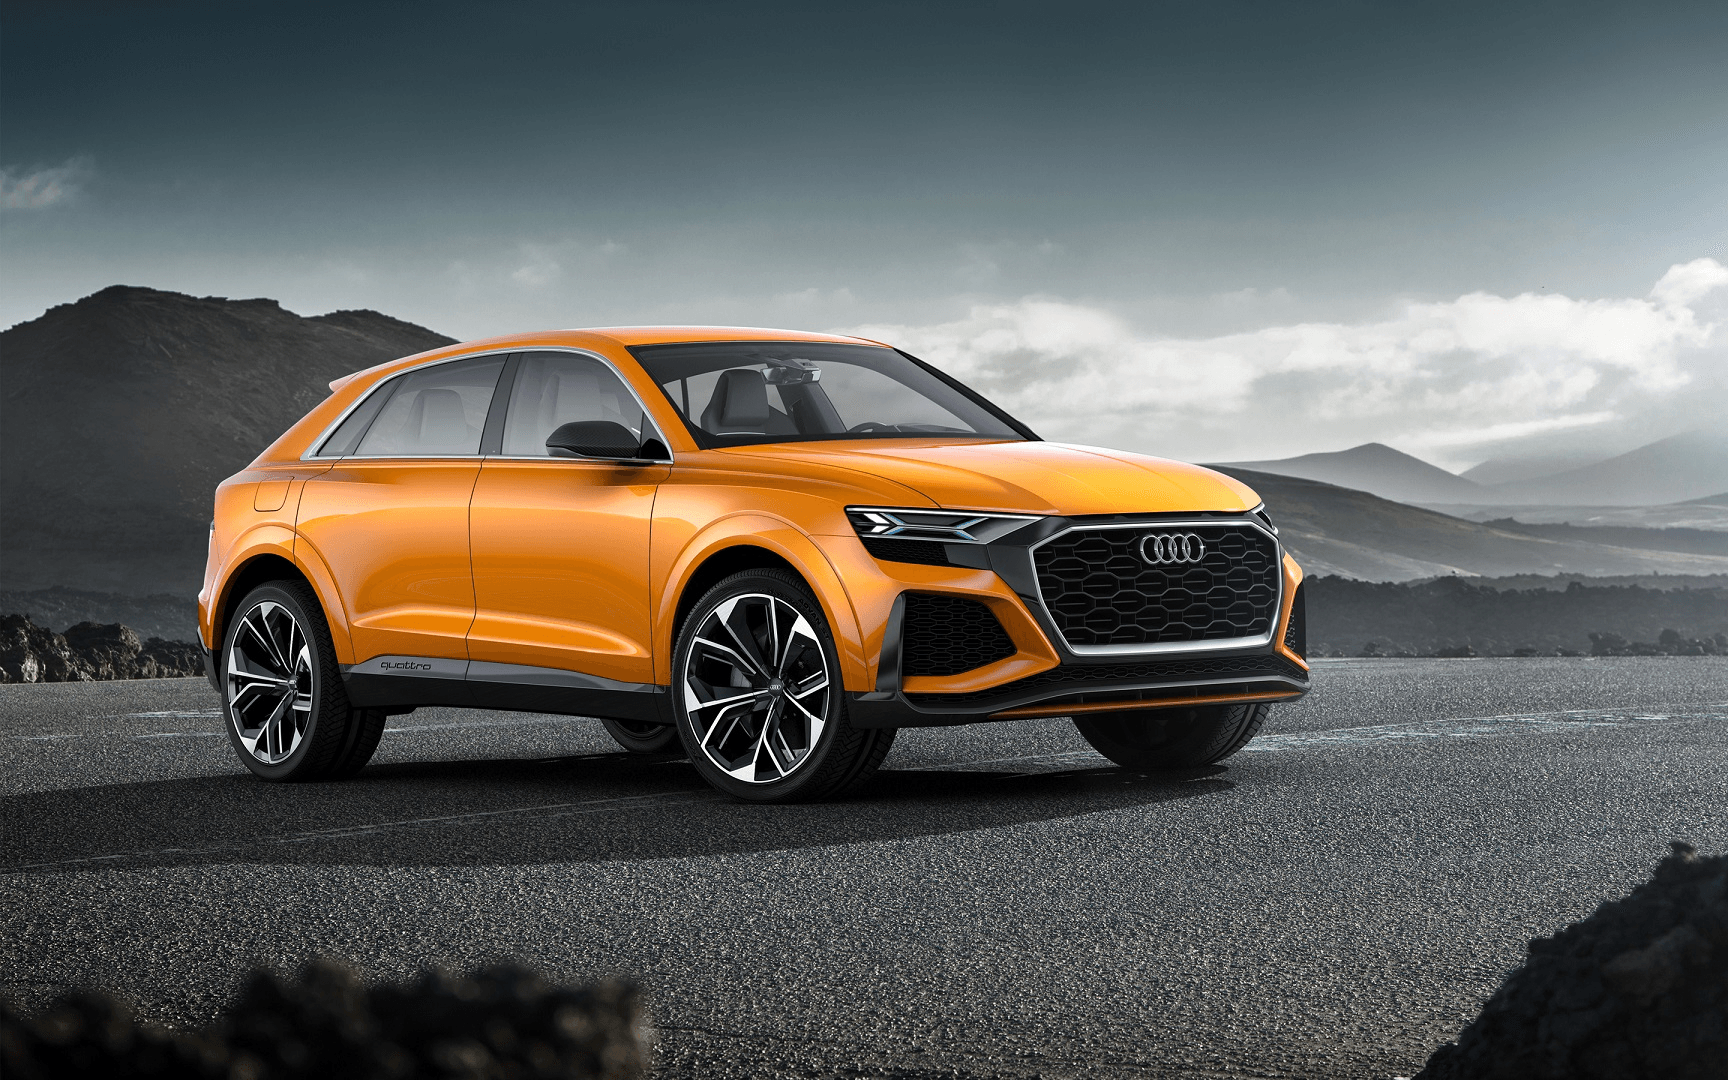 The All-New Audi Q8